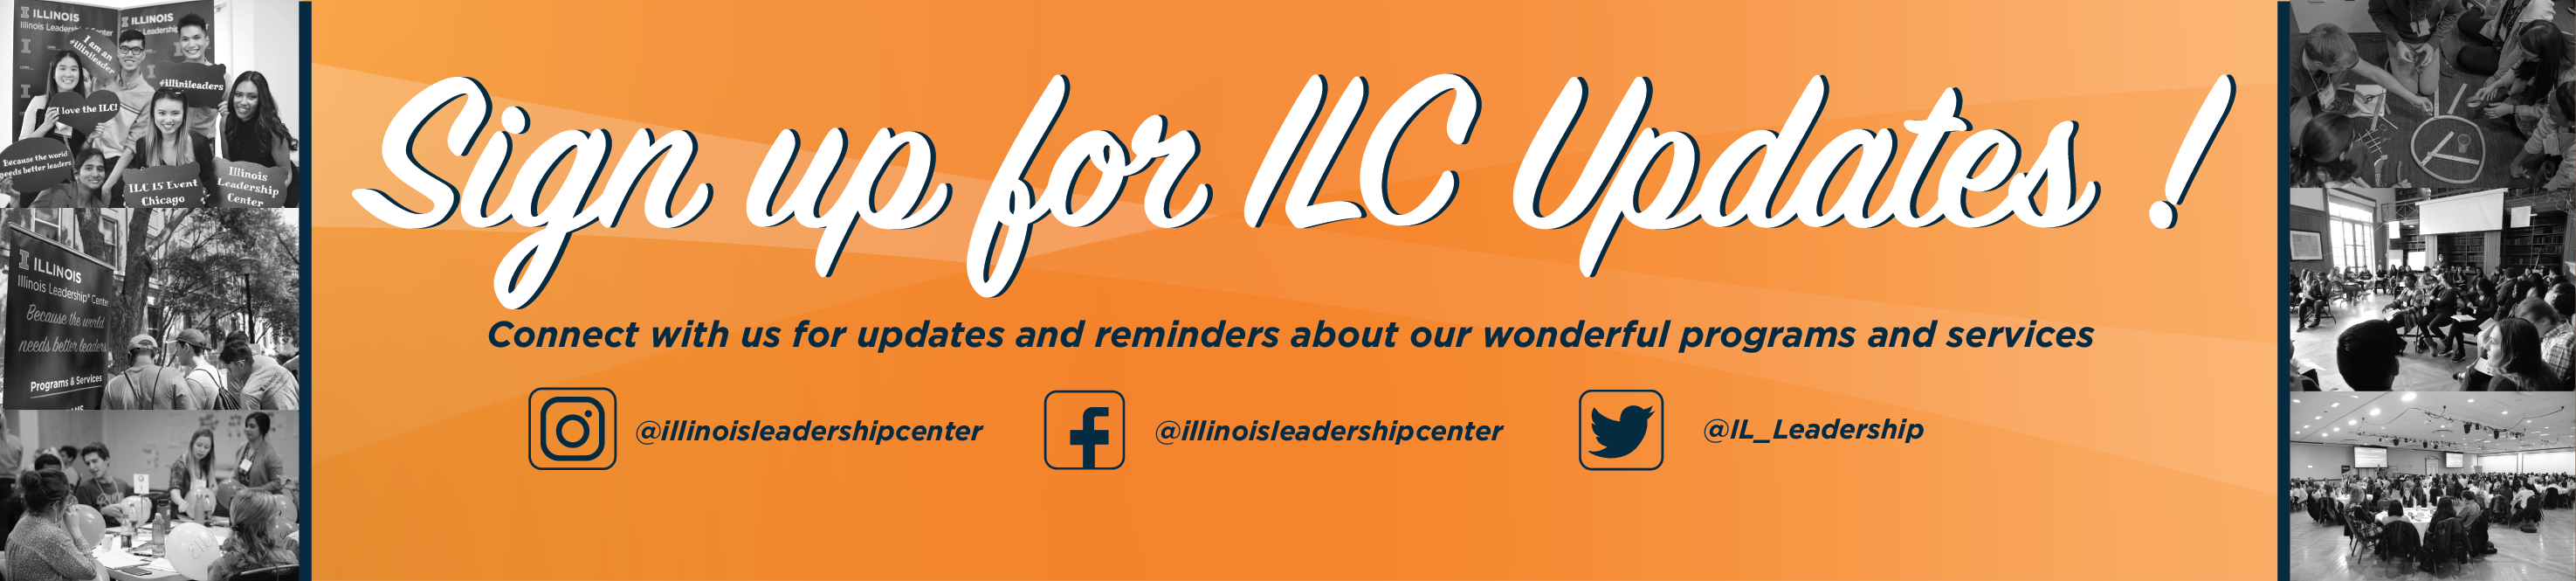 Sign up for ILC updates by going to https://groups.webservices.illinois.edu/subscribe/97630